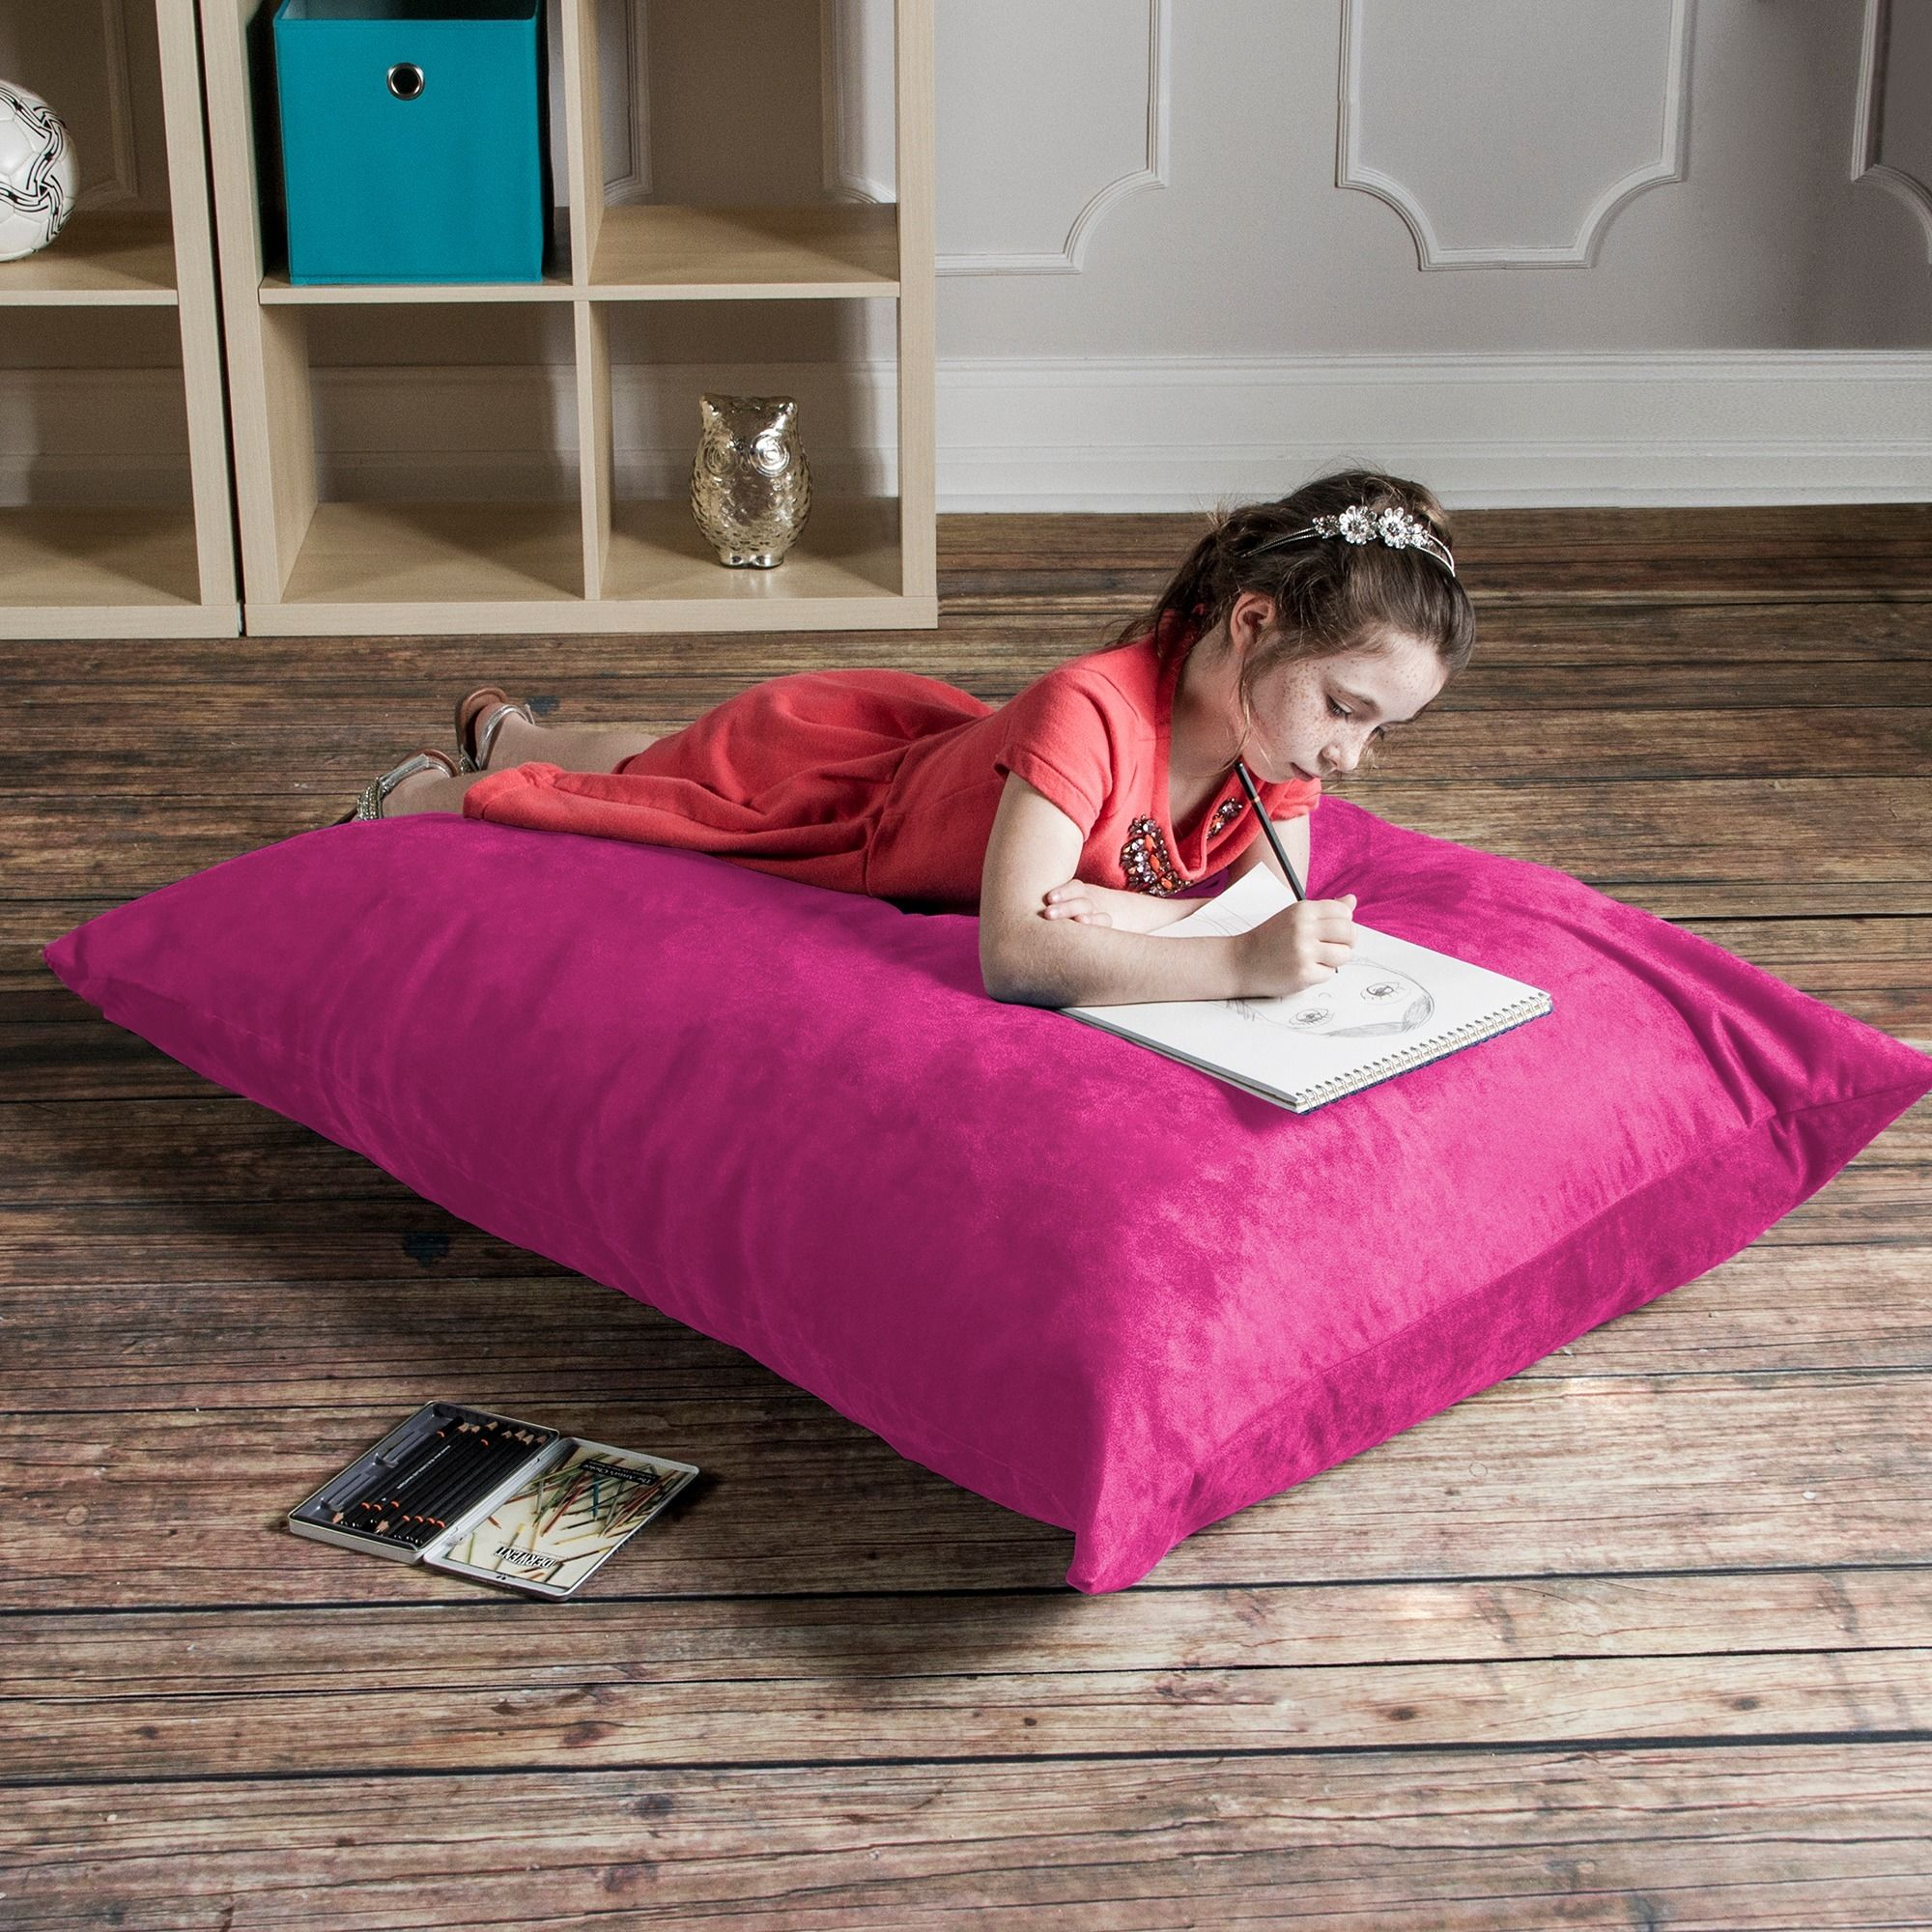 The 3.5' Pillow Saxx is perfect for active kids who need a platform for playing games, watching TV and hanging out. Lying flat, it works as a crash pad, and on it's side or against the wall it provides the perfect platform for relaxing.